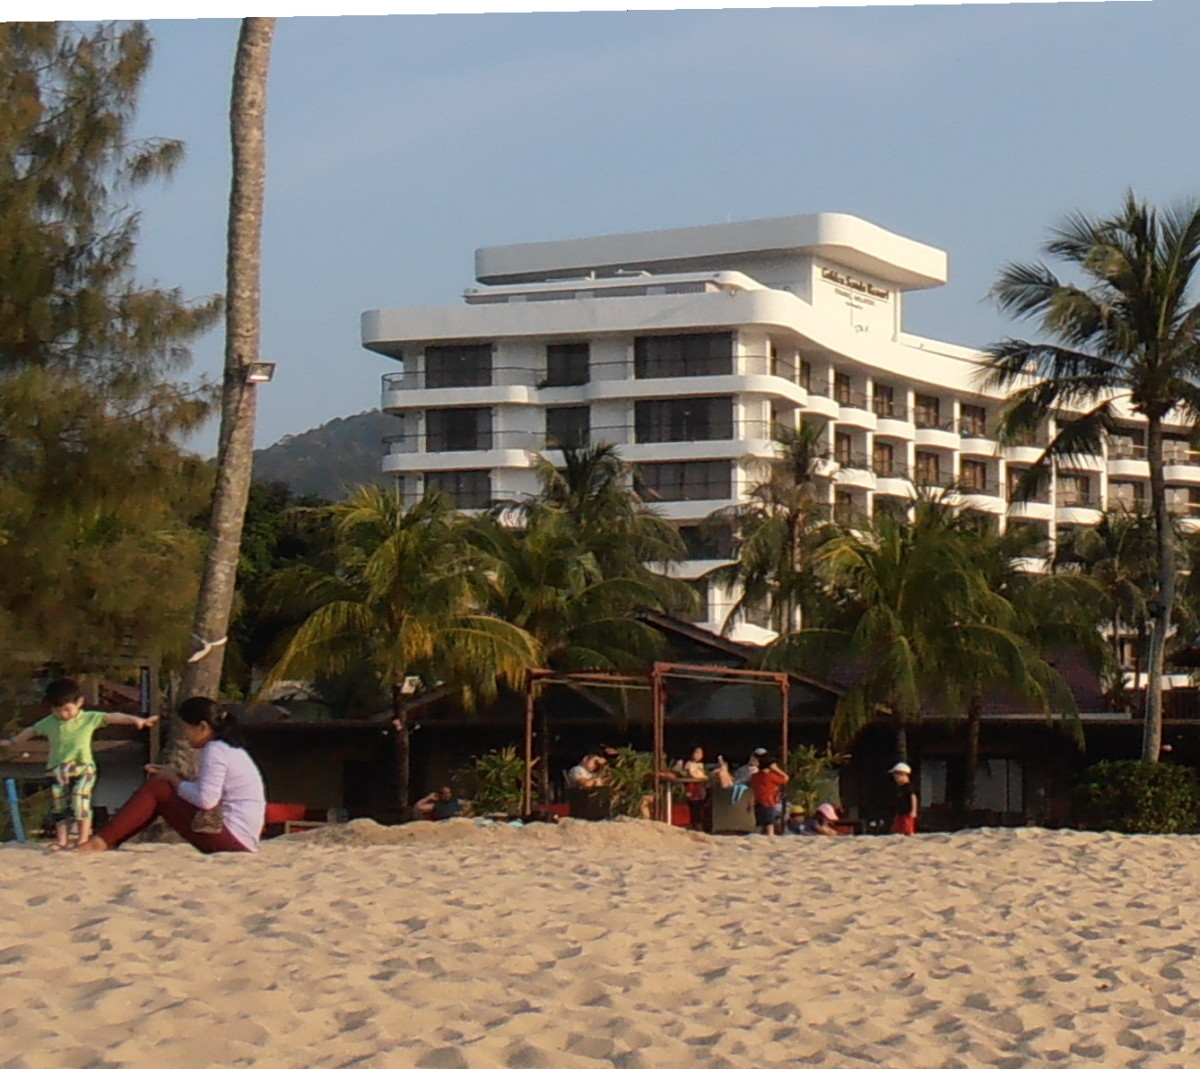 Luxury hotel, The Golden Sands, close to the beach.